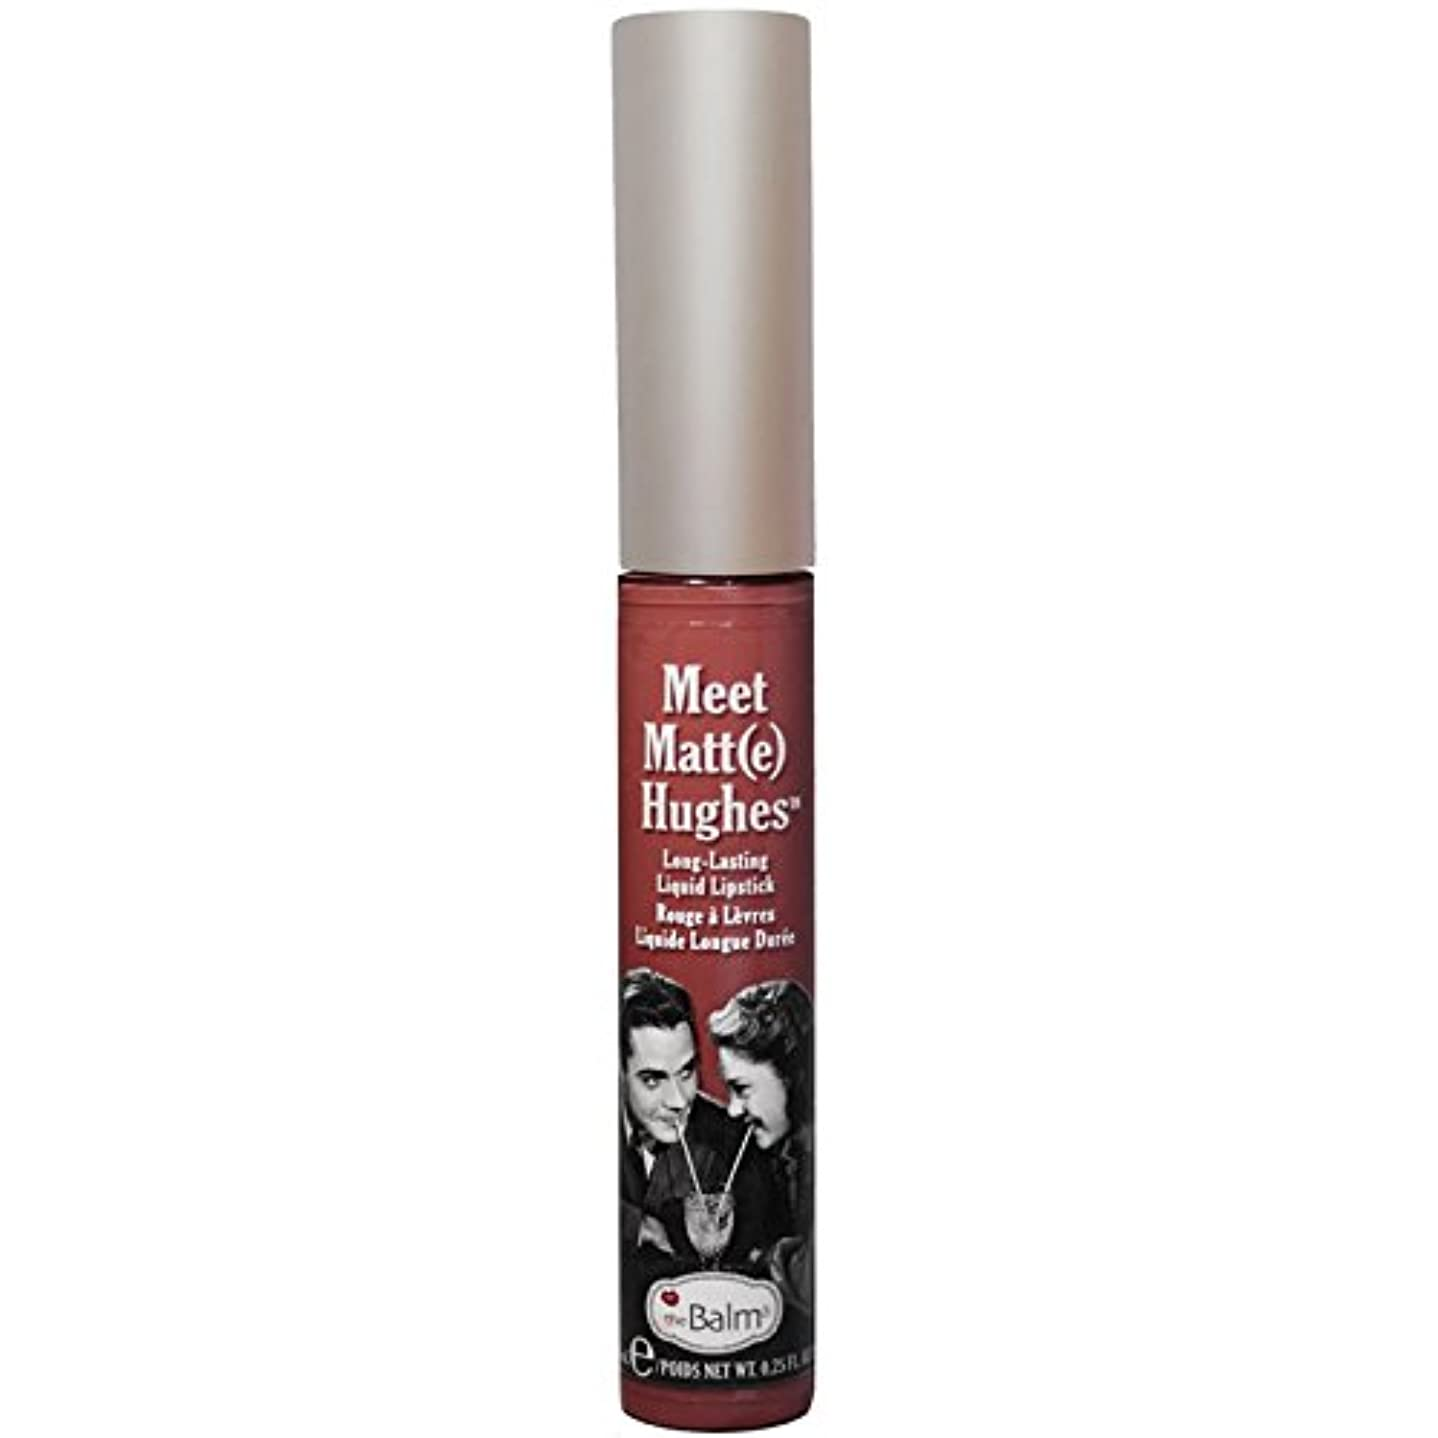 責任体保険theBalm - Meet Matt(e) Hughes Long-Lasting Liquid Lipstick Trustworthy [並行輸入品]